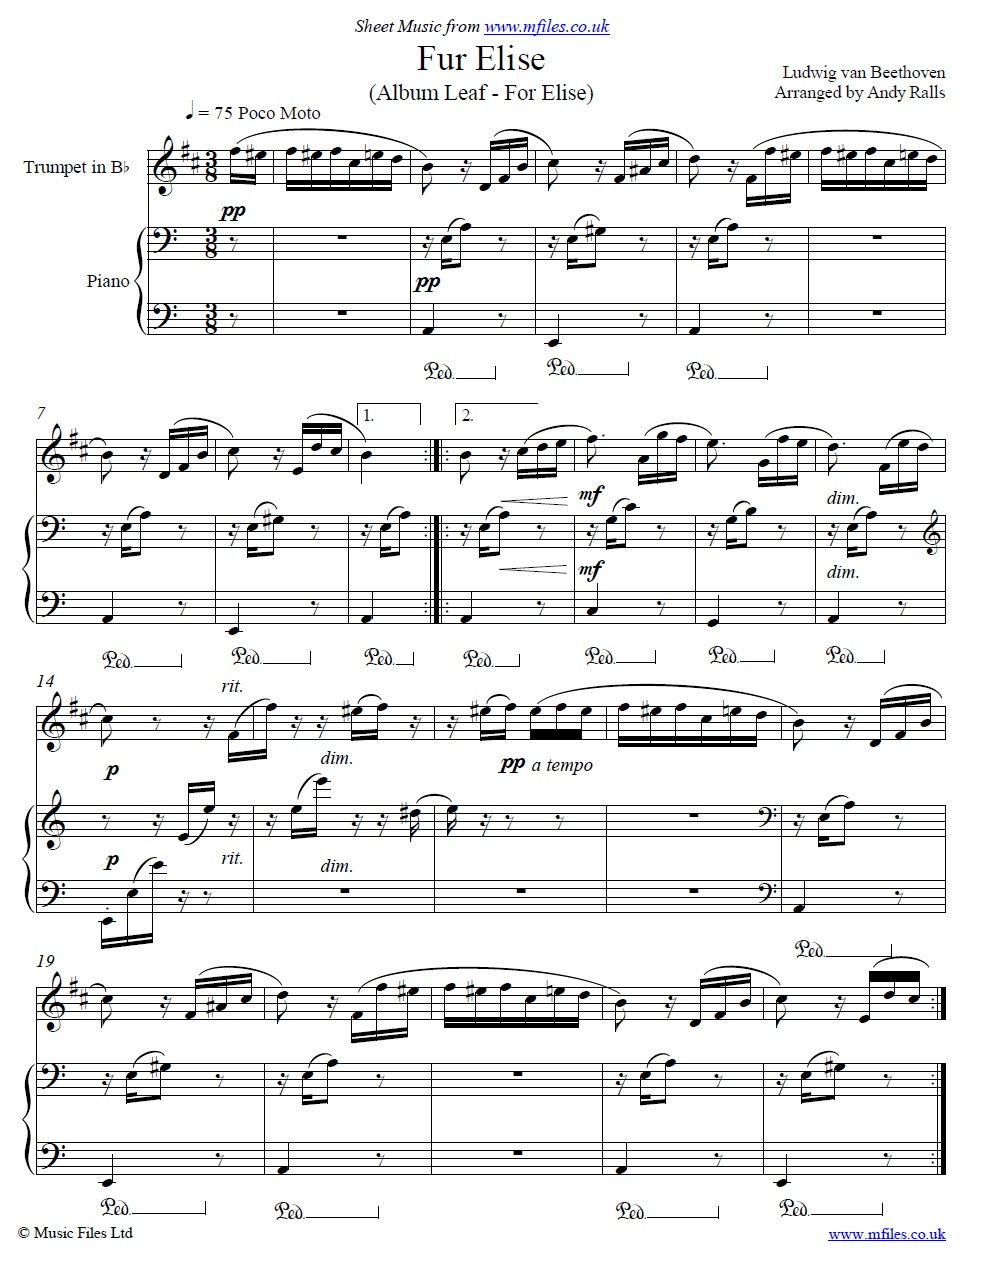 Ludwig van Beethoven : Fur Elise (arranged for Trumpet and Piano